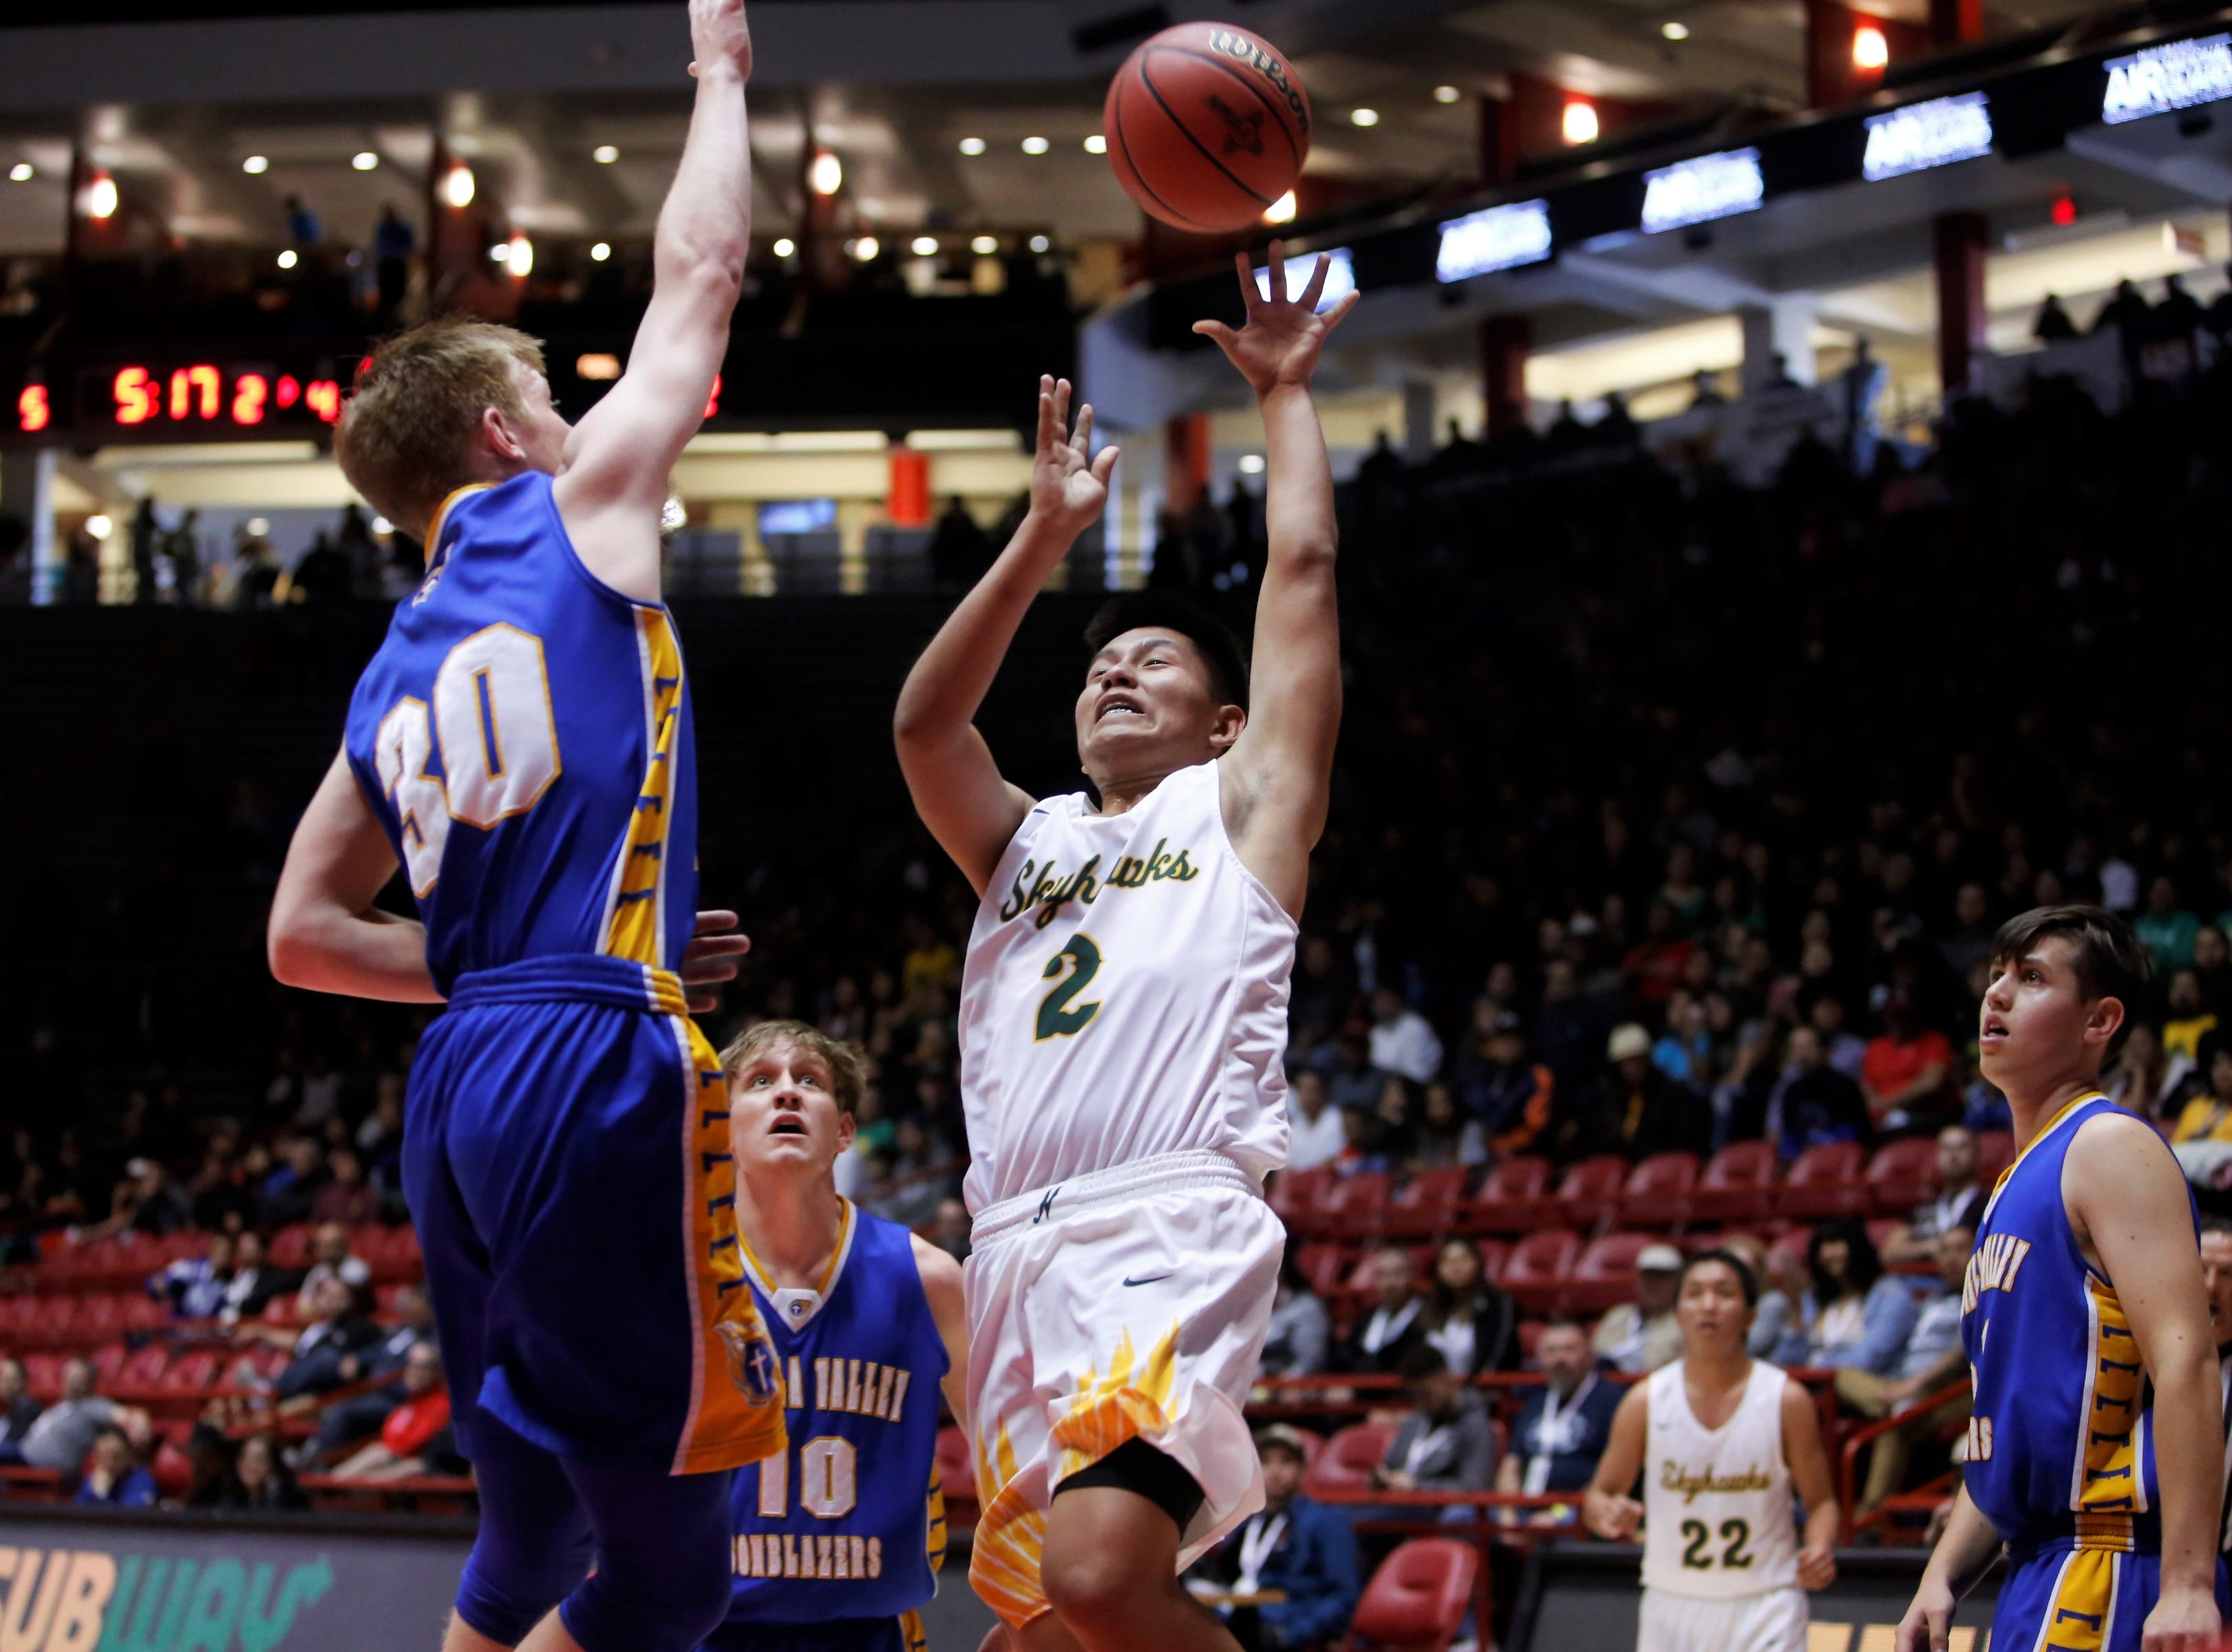 Newcomb's Deion Johnhat puts up a shot against Mesilla Valley's Nolan Nunley (30) during Friday's 2A state semifinals at Dreamstyle Arena in Albuquerque.